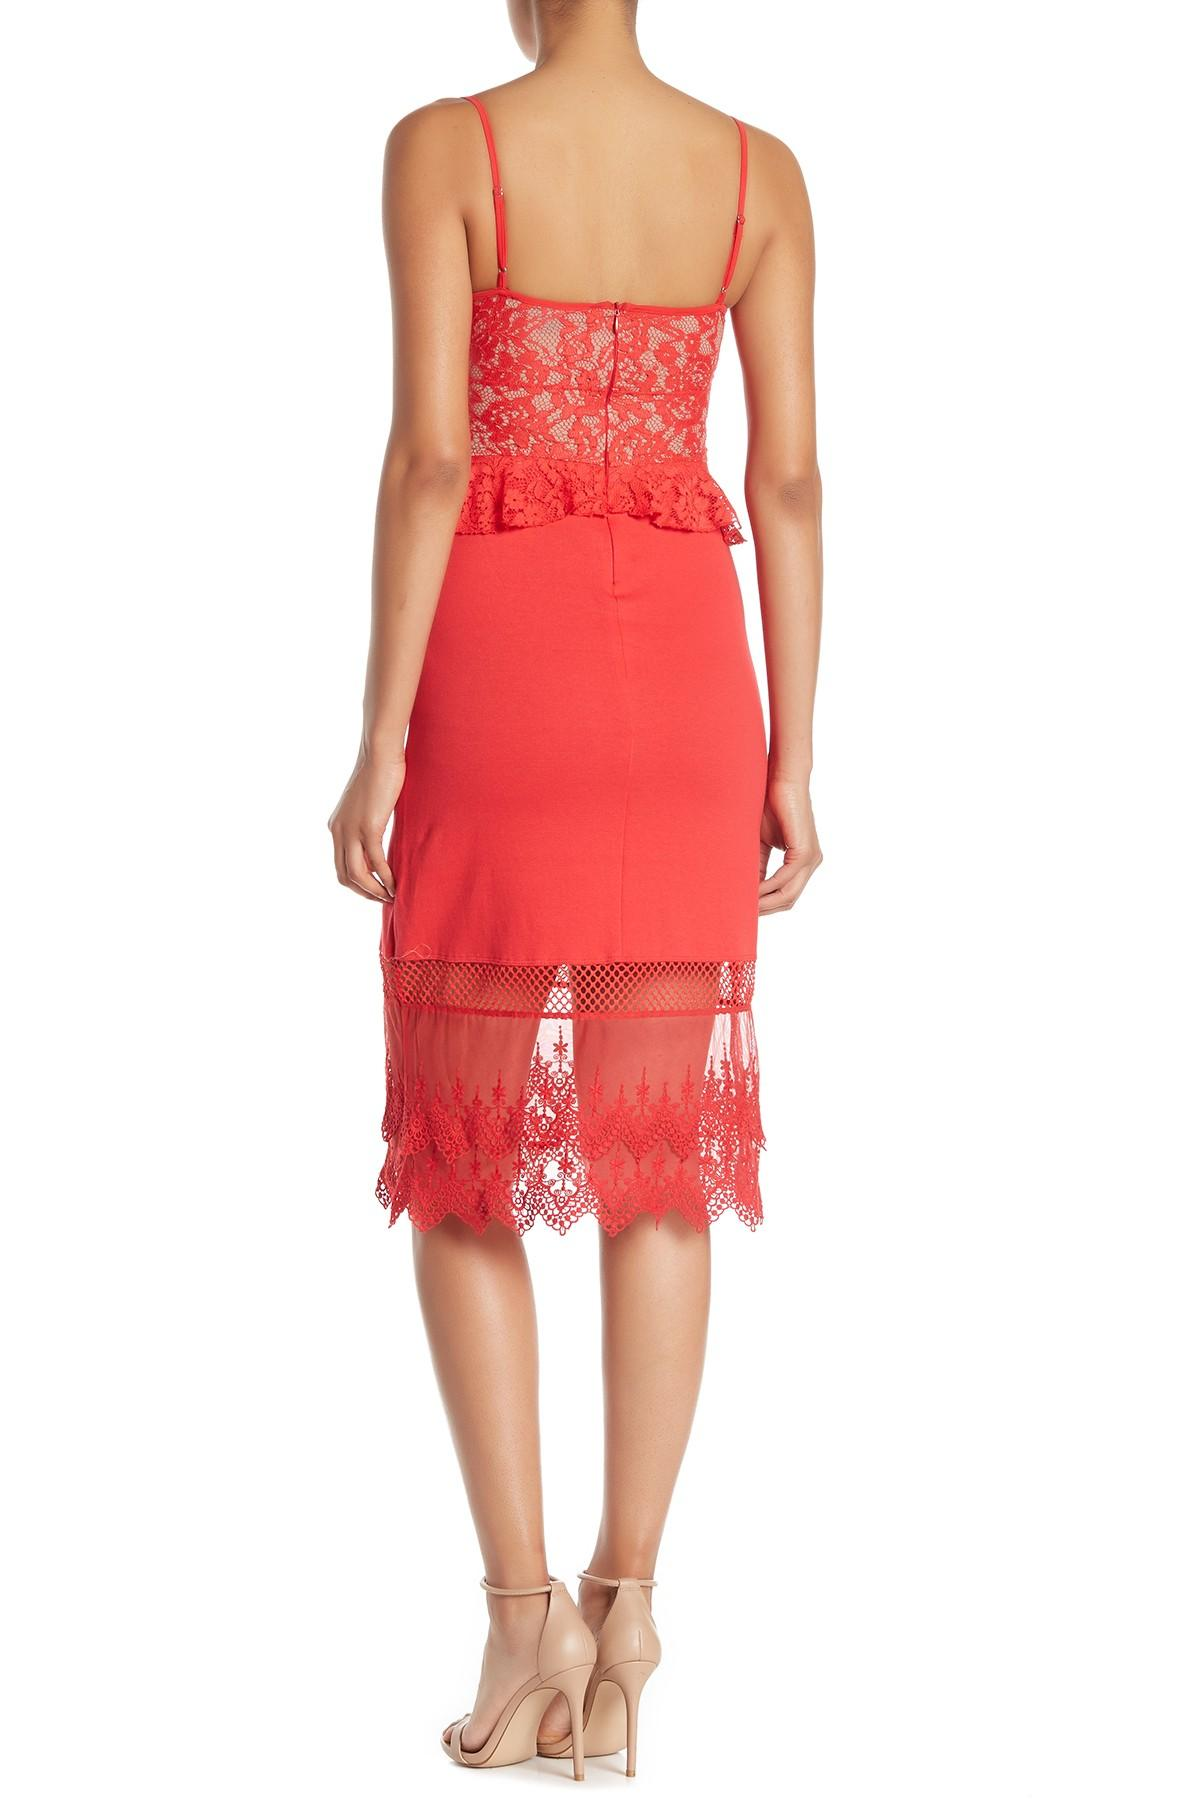 ce6b10516b2 French Connection - Red Delos Lucky Lace Peplum Sheath Dress - Lyst. View  fullscreen